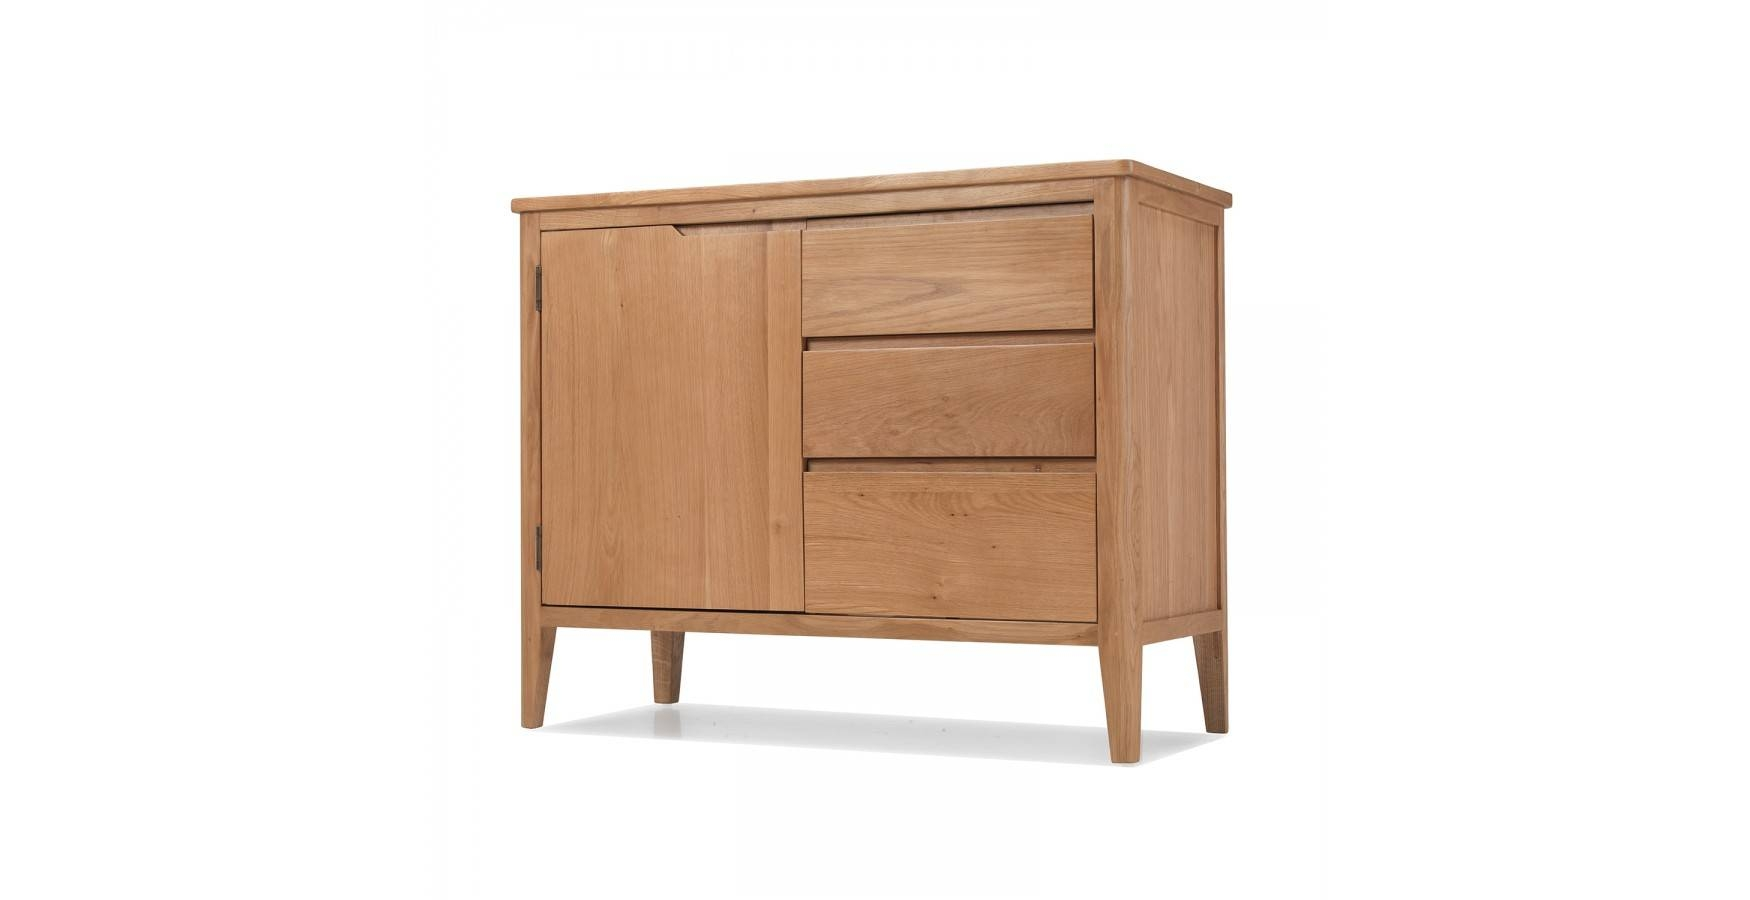 Cadley Oak Small Sideboard With Drawers – Lifestyle Furniture Uk In Small Sideboards With Drawers (View 13 of 15)